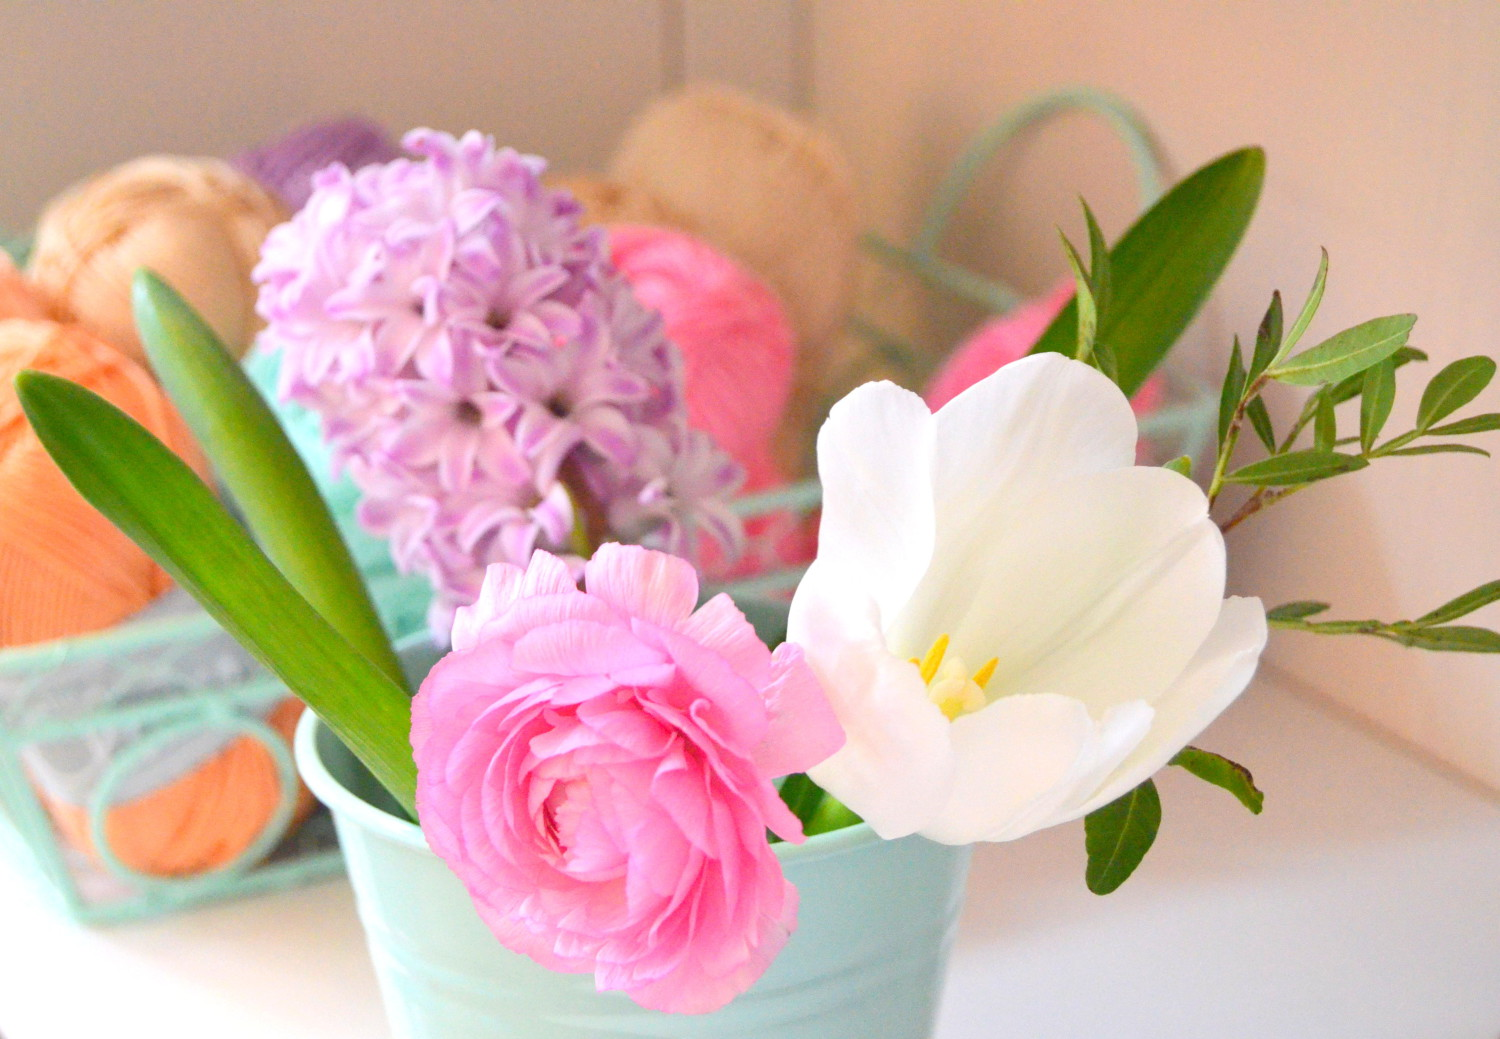 byclaire-blog-bloemen